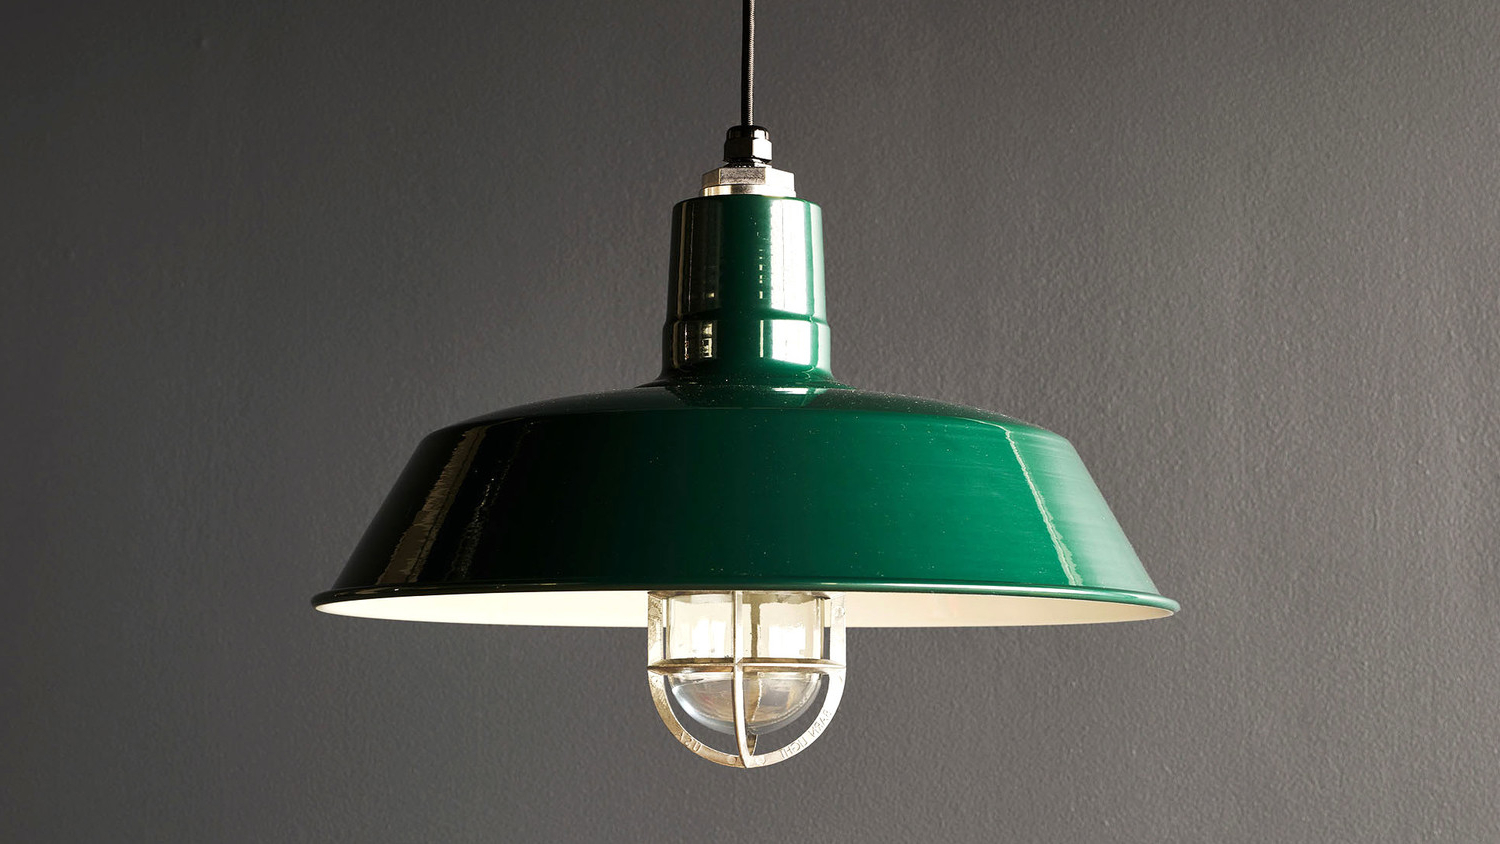 [%New Sales Are Here! 45% Off Birch Lane  Heritage 1 Light Pertaining To 2019 Proctor 1 Light Bowl Pendants|Proctor 1 Light Bowl Pendants Pertaining To Popular New Sales Are Here! 45% Off Birch Lane  Heritage 1 Light|Best And Newest Proctor 1 Light Bowl Pendants In New Sales Are Here! 45% Off Birch Lane  Heritage 1 Light|Popular New Sales Are Here! 45% Off Birch Lane  Heritage 1 Light With Regard To Proctor 1 Light Bowl Pendants%] (View 1 of 20)